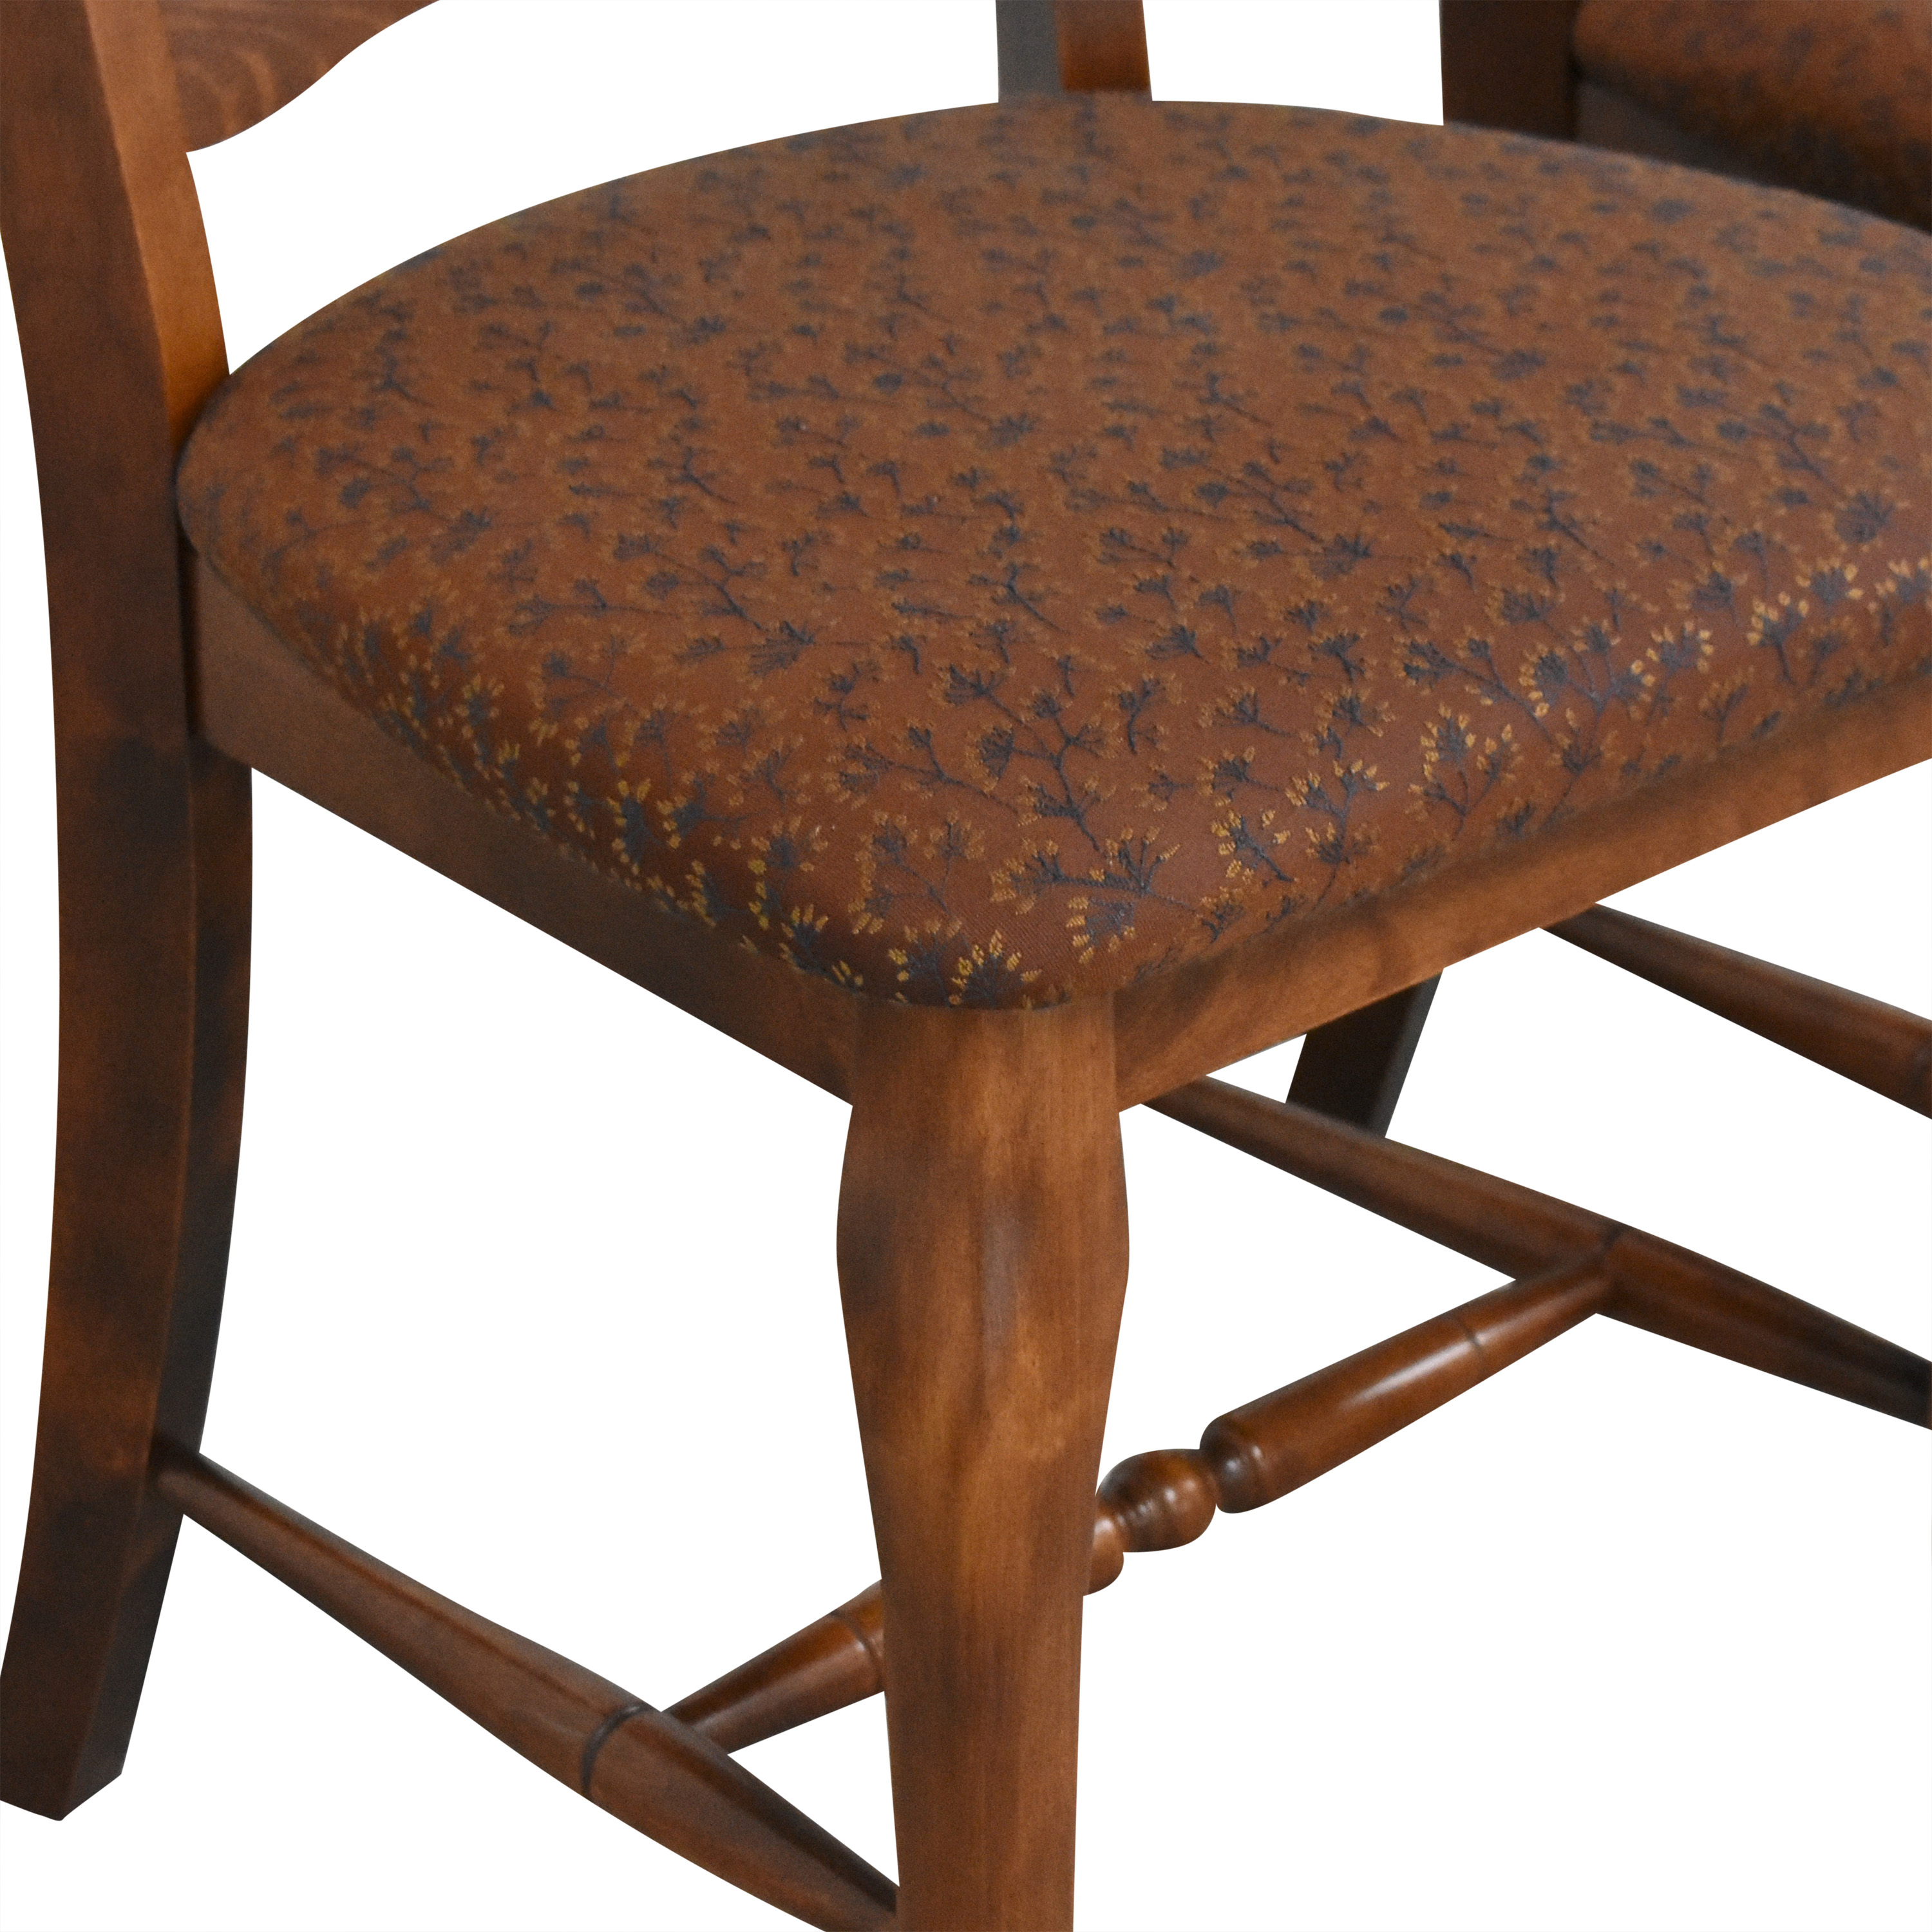 Canadel Canadel Upholstered Dining Chairs used